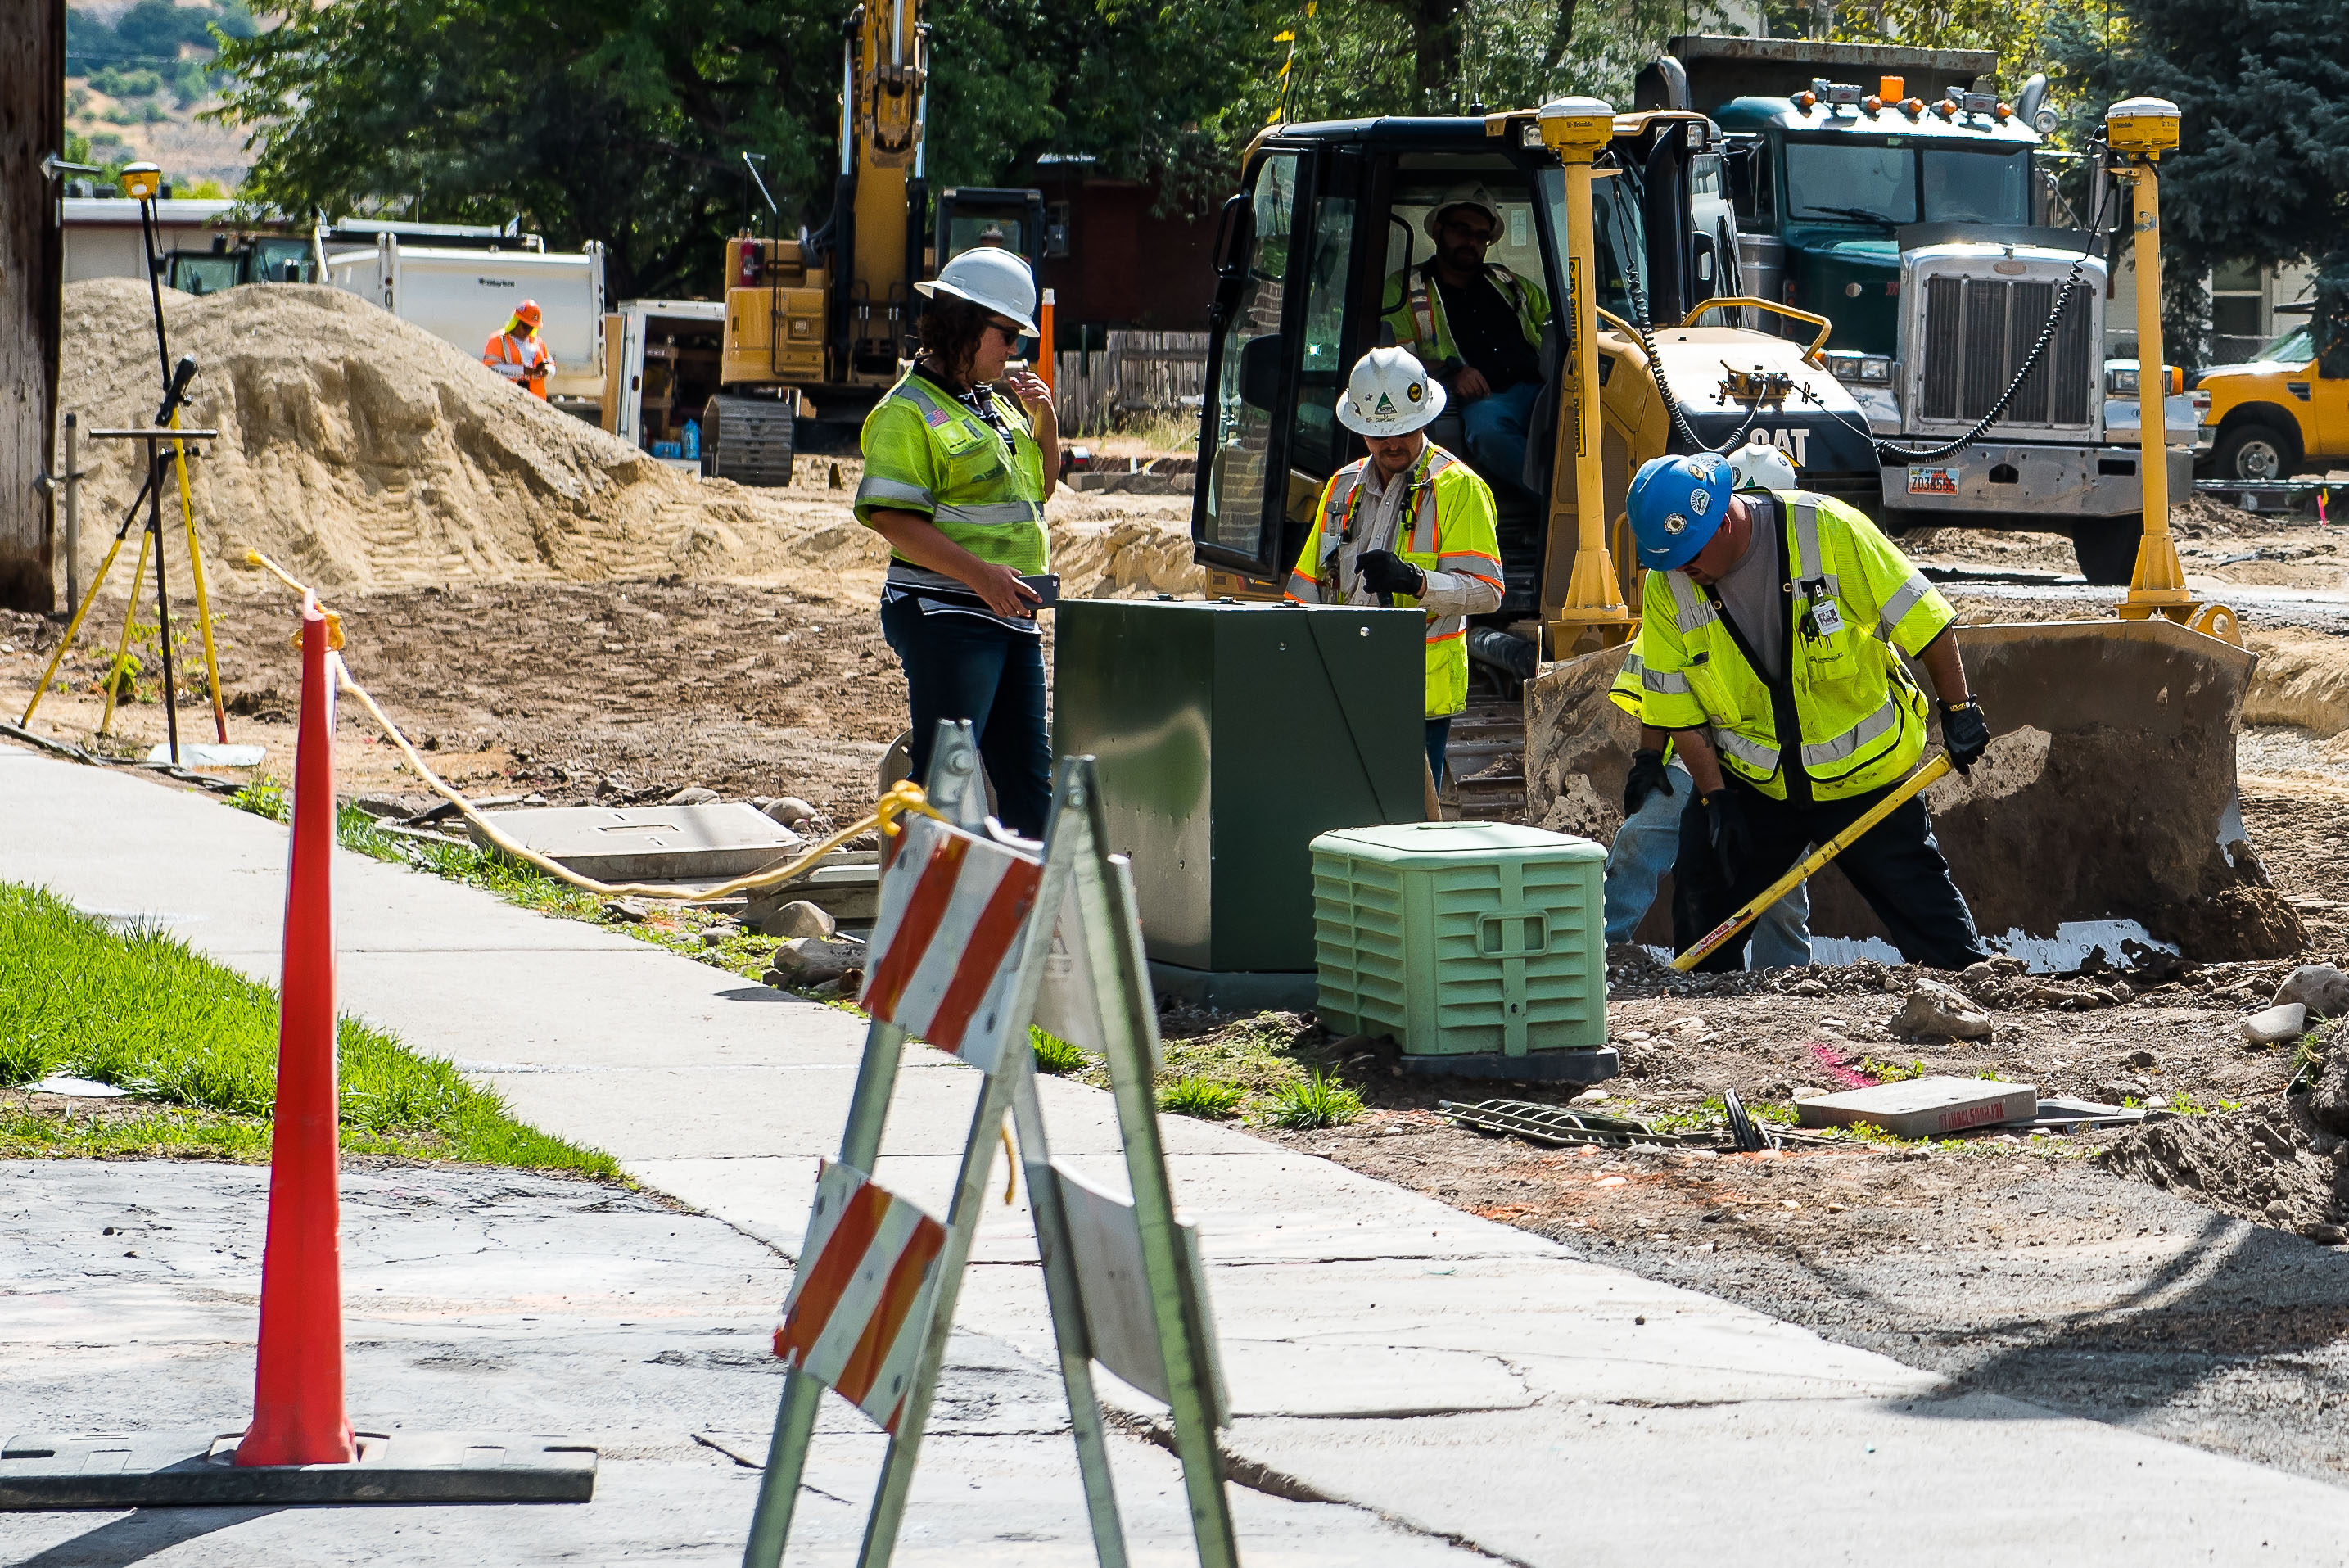 Major Provo construction due to new transport options